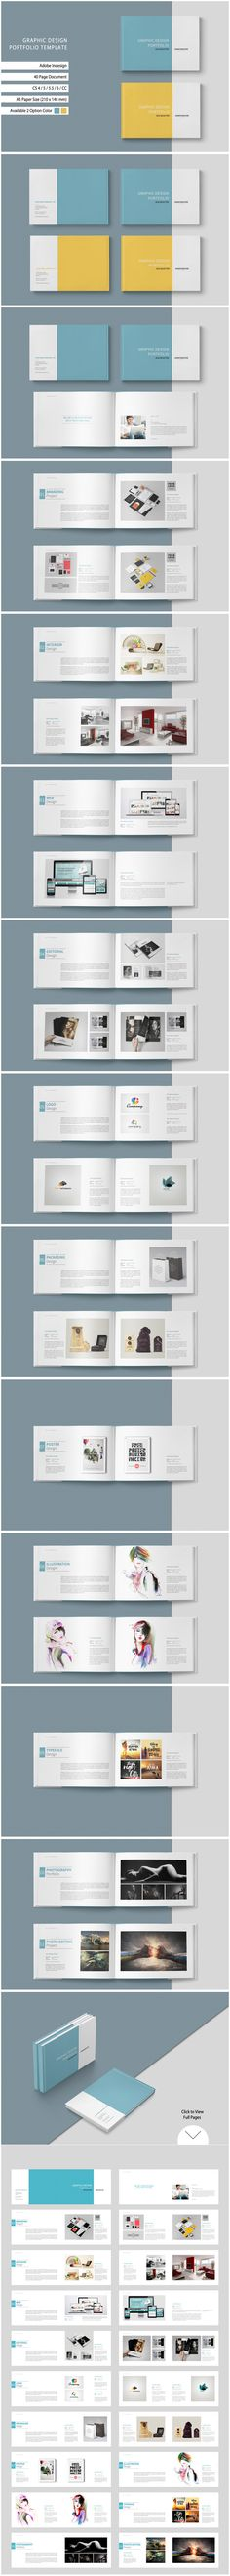 This is 40 page minimal brochure template is for designers working on product/graphic design portfolios interior design catalogues, product catalogues, and agency based projects. Just drop in your own images and texts, and its Ready to Print. More